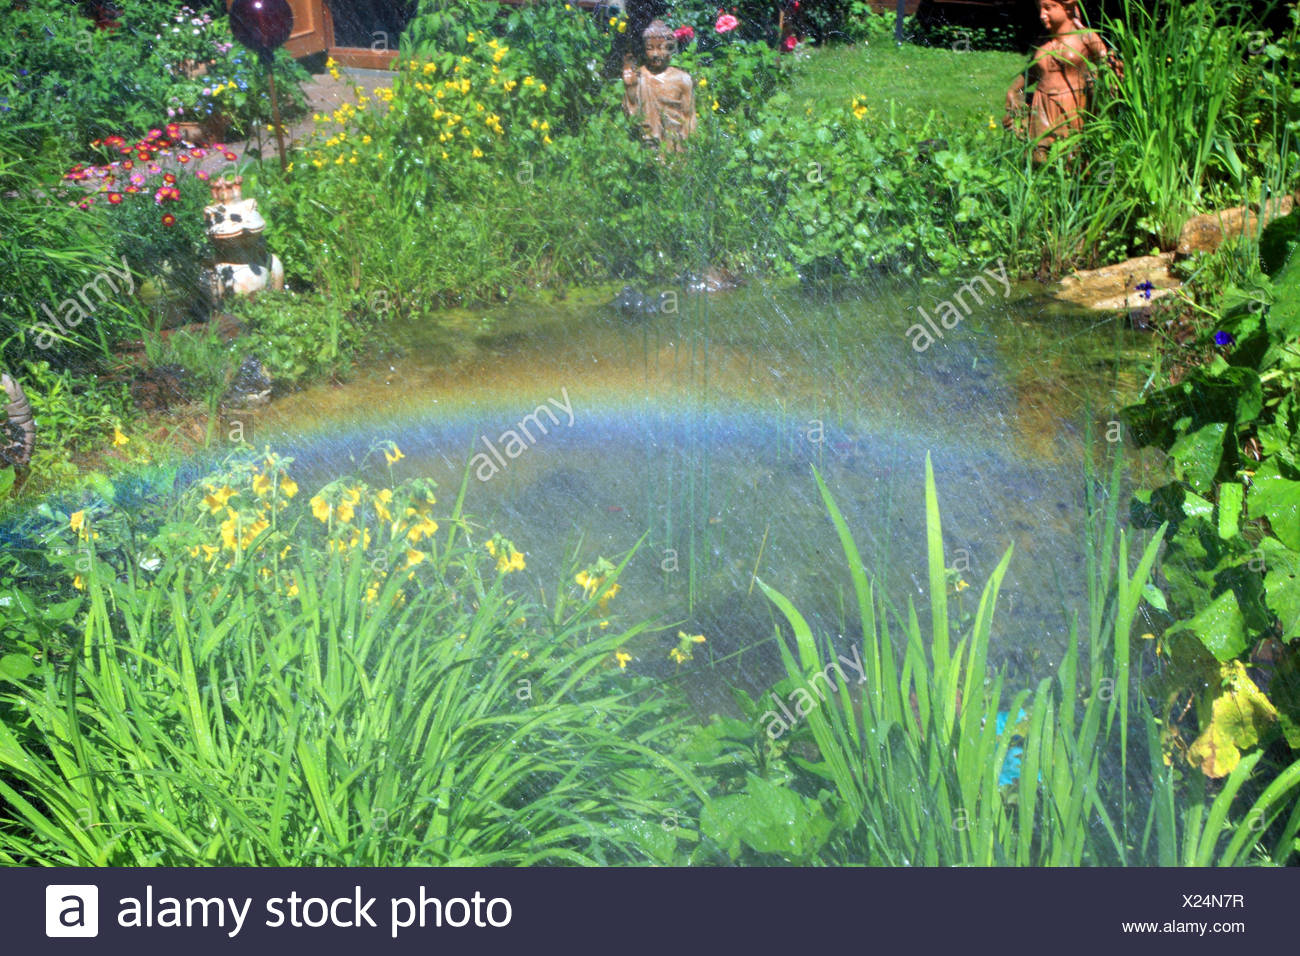 Rainbows over garden pond, - Stock Image